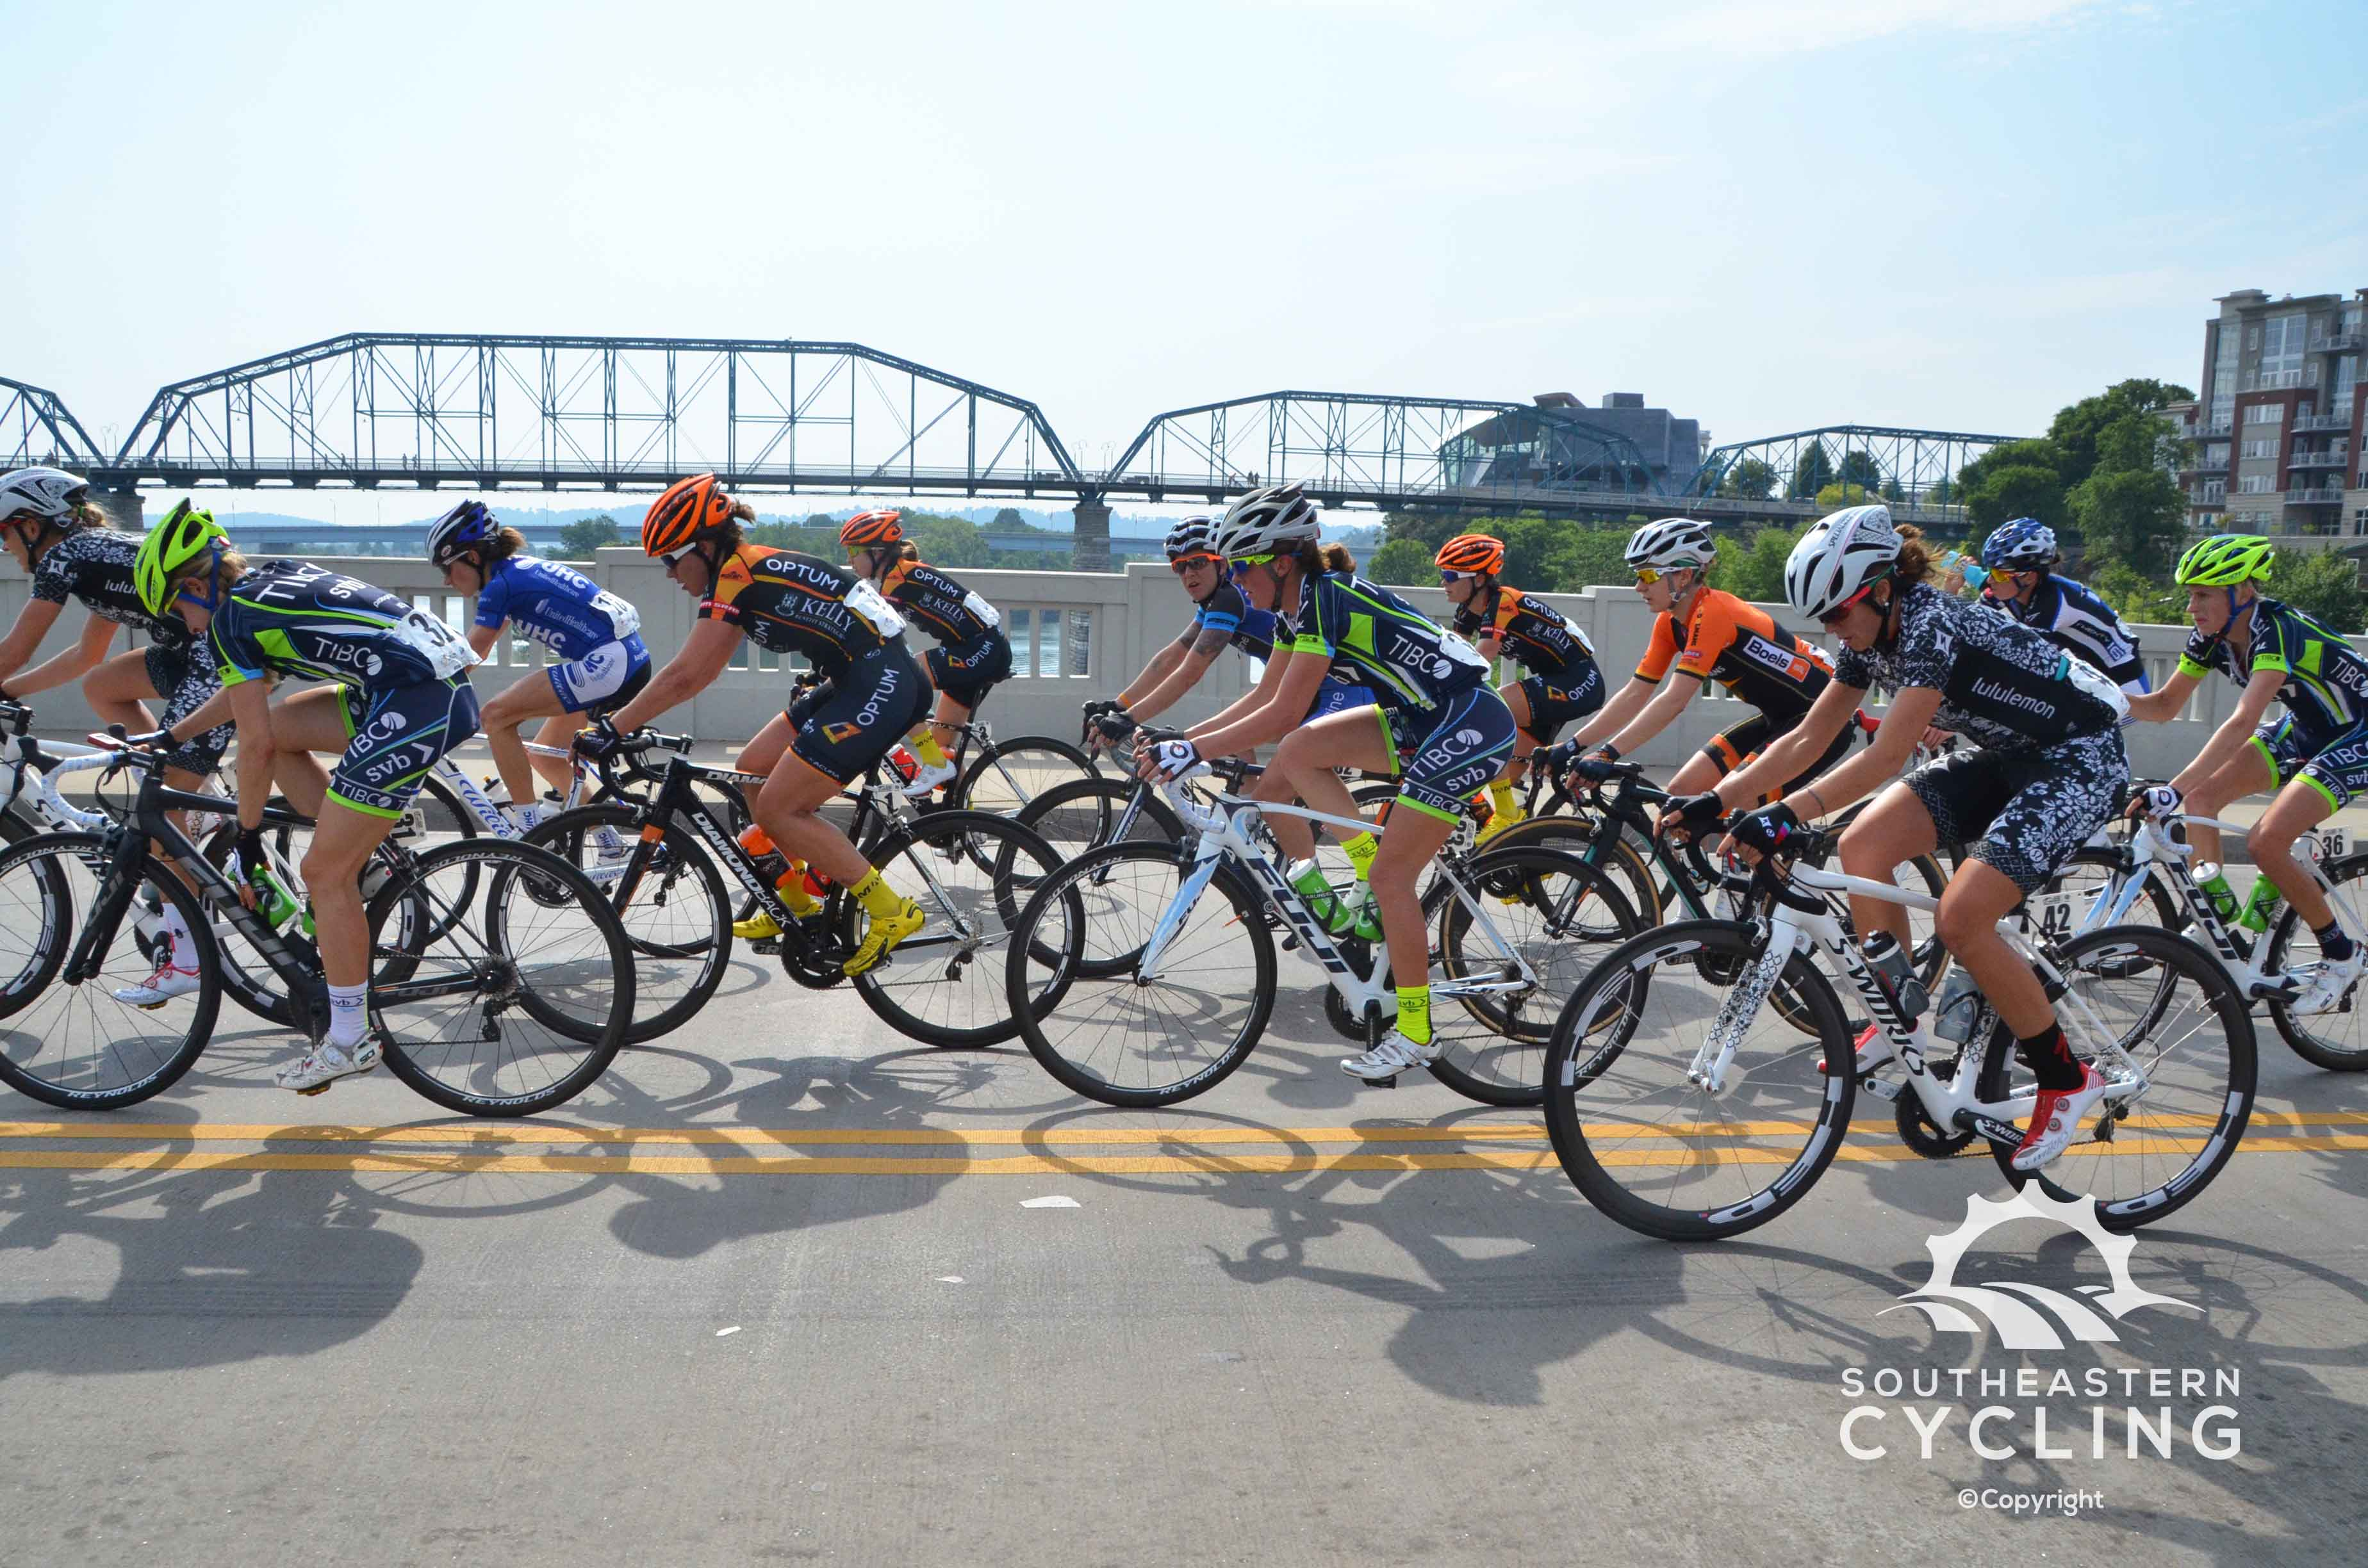 Southeastern Cycling | Southeastern cycling news, rides, races and